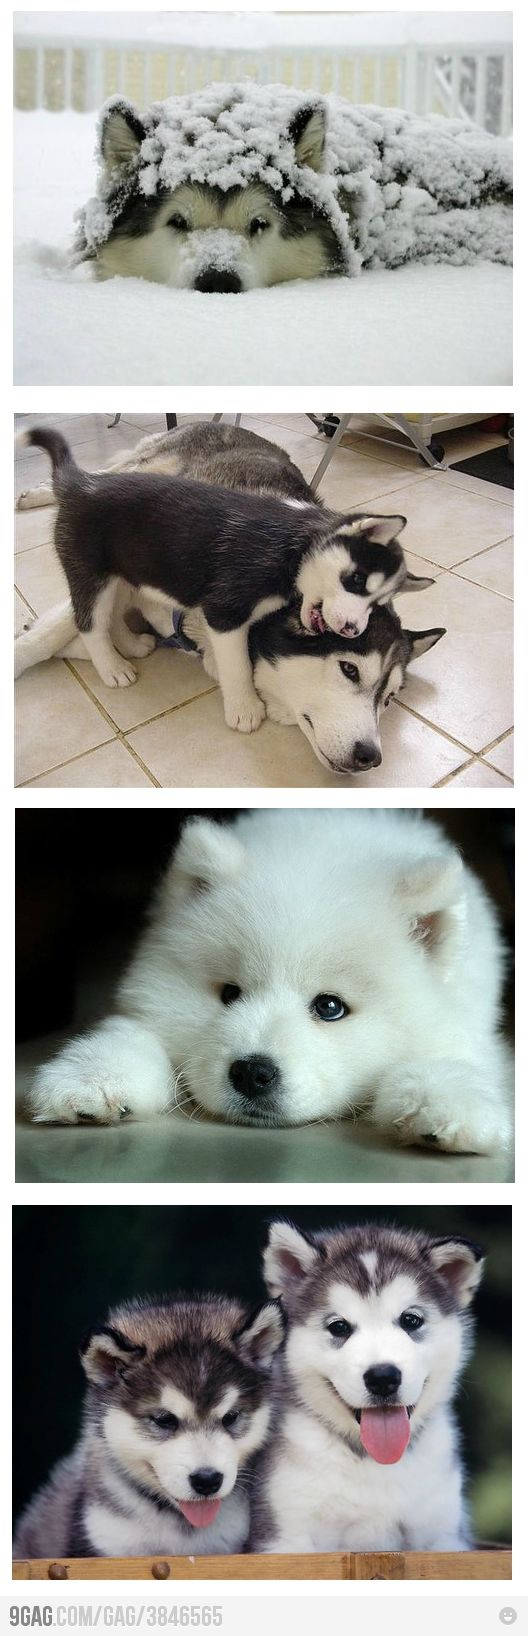 huskies=the best animals.